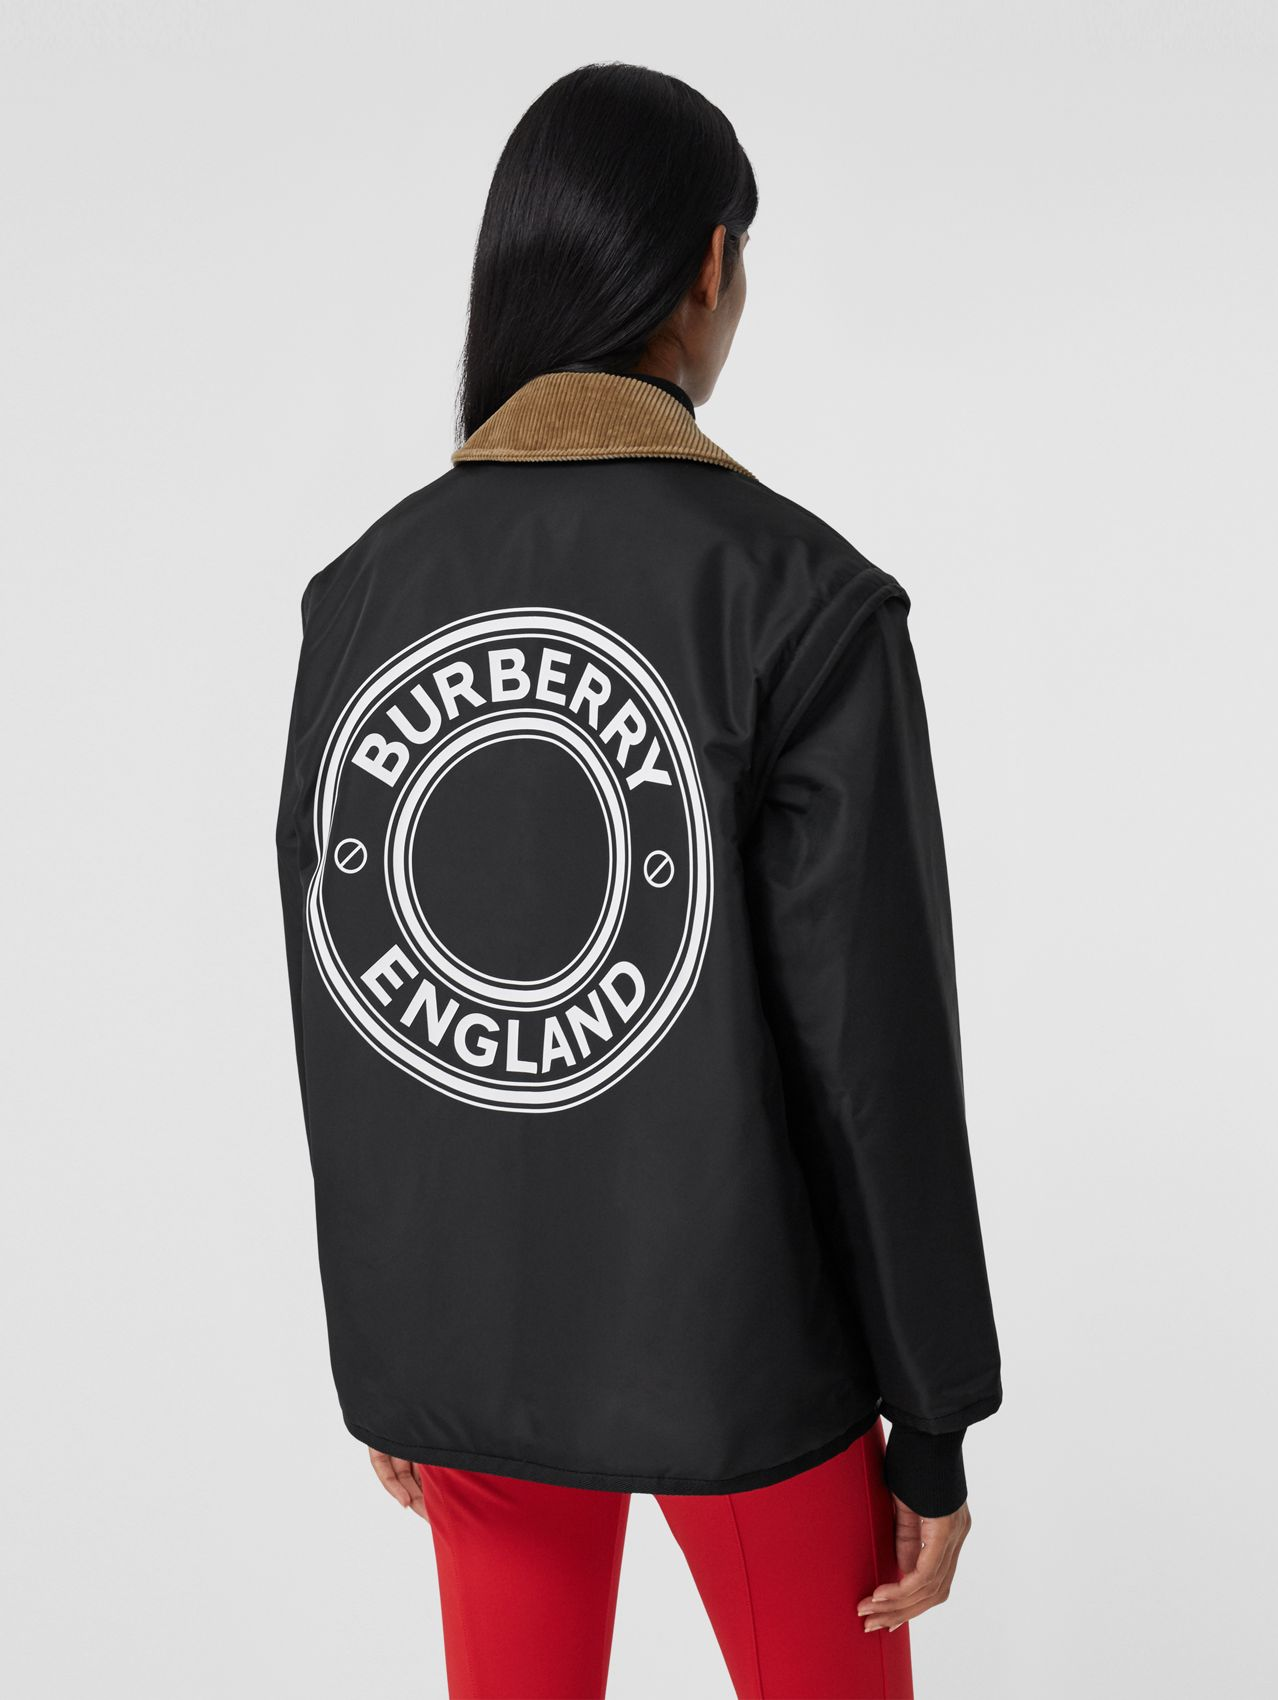 Detachable Sleeve Reversible Logo Graphic Jacket in Black